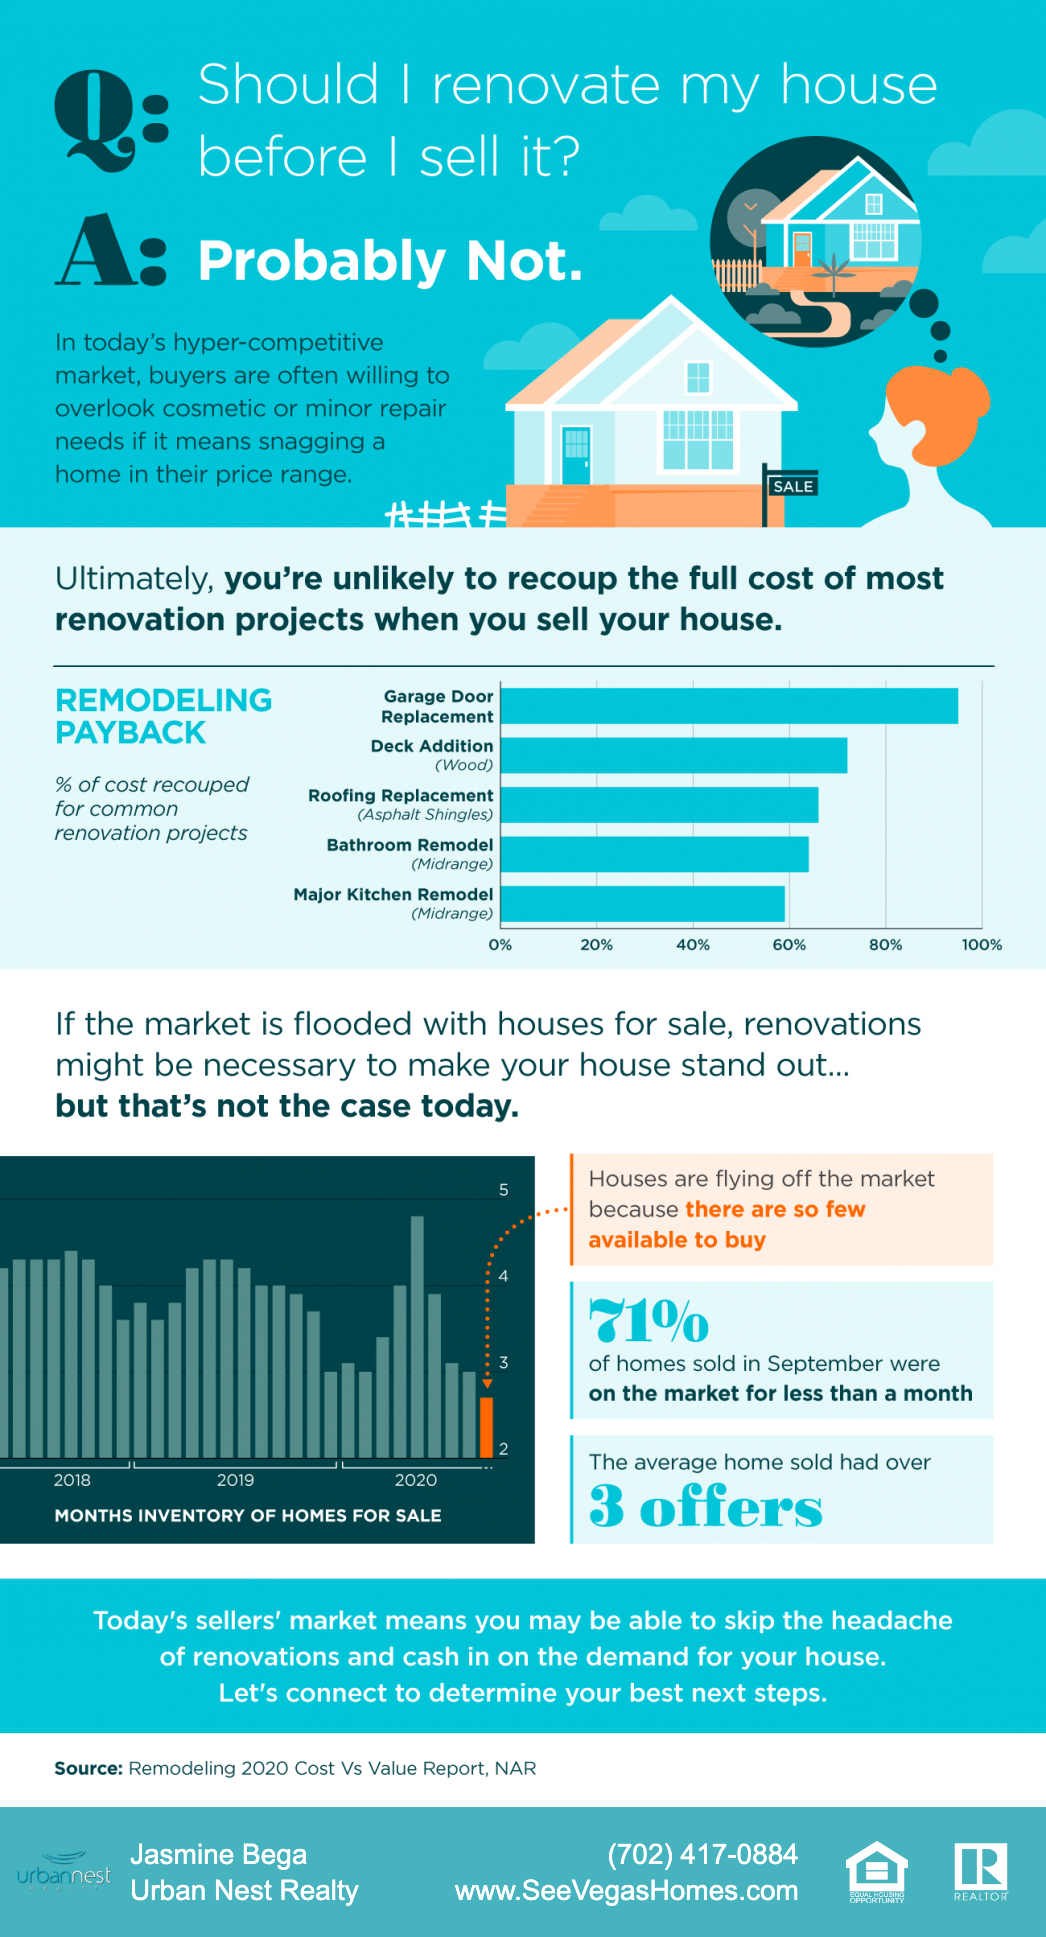 Should I Renovate My House Before I Sell It? INFOGRAPHIC